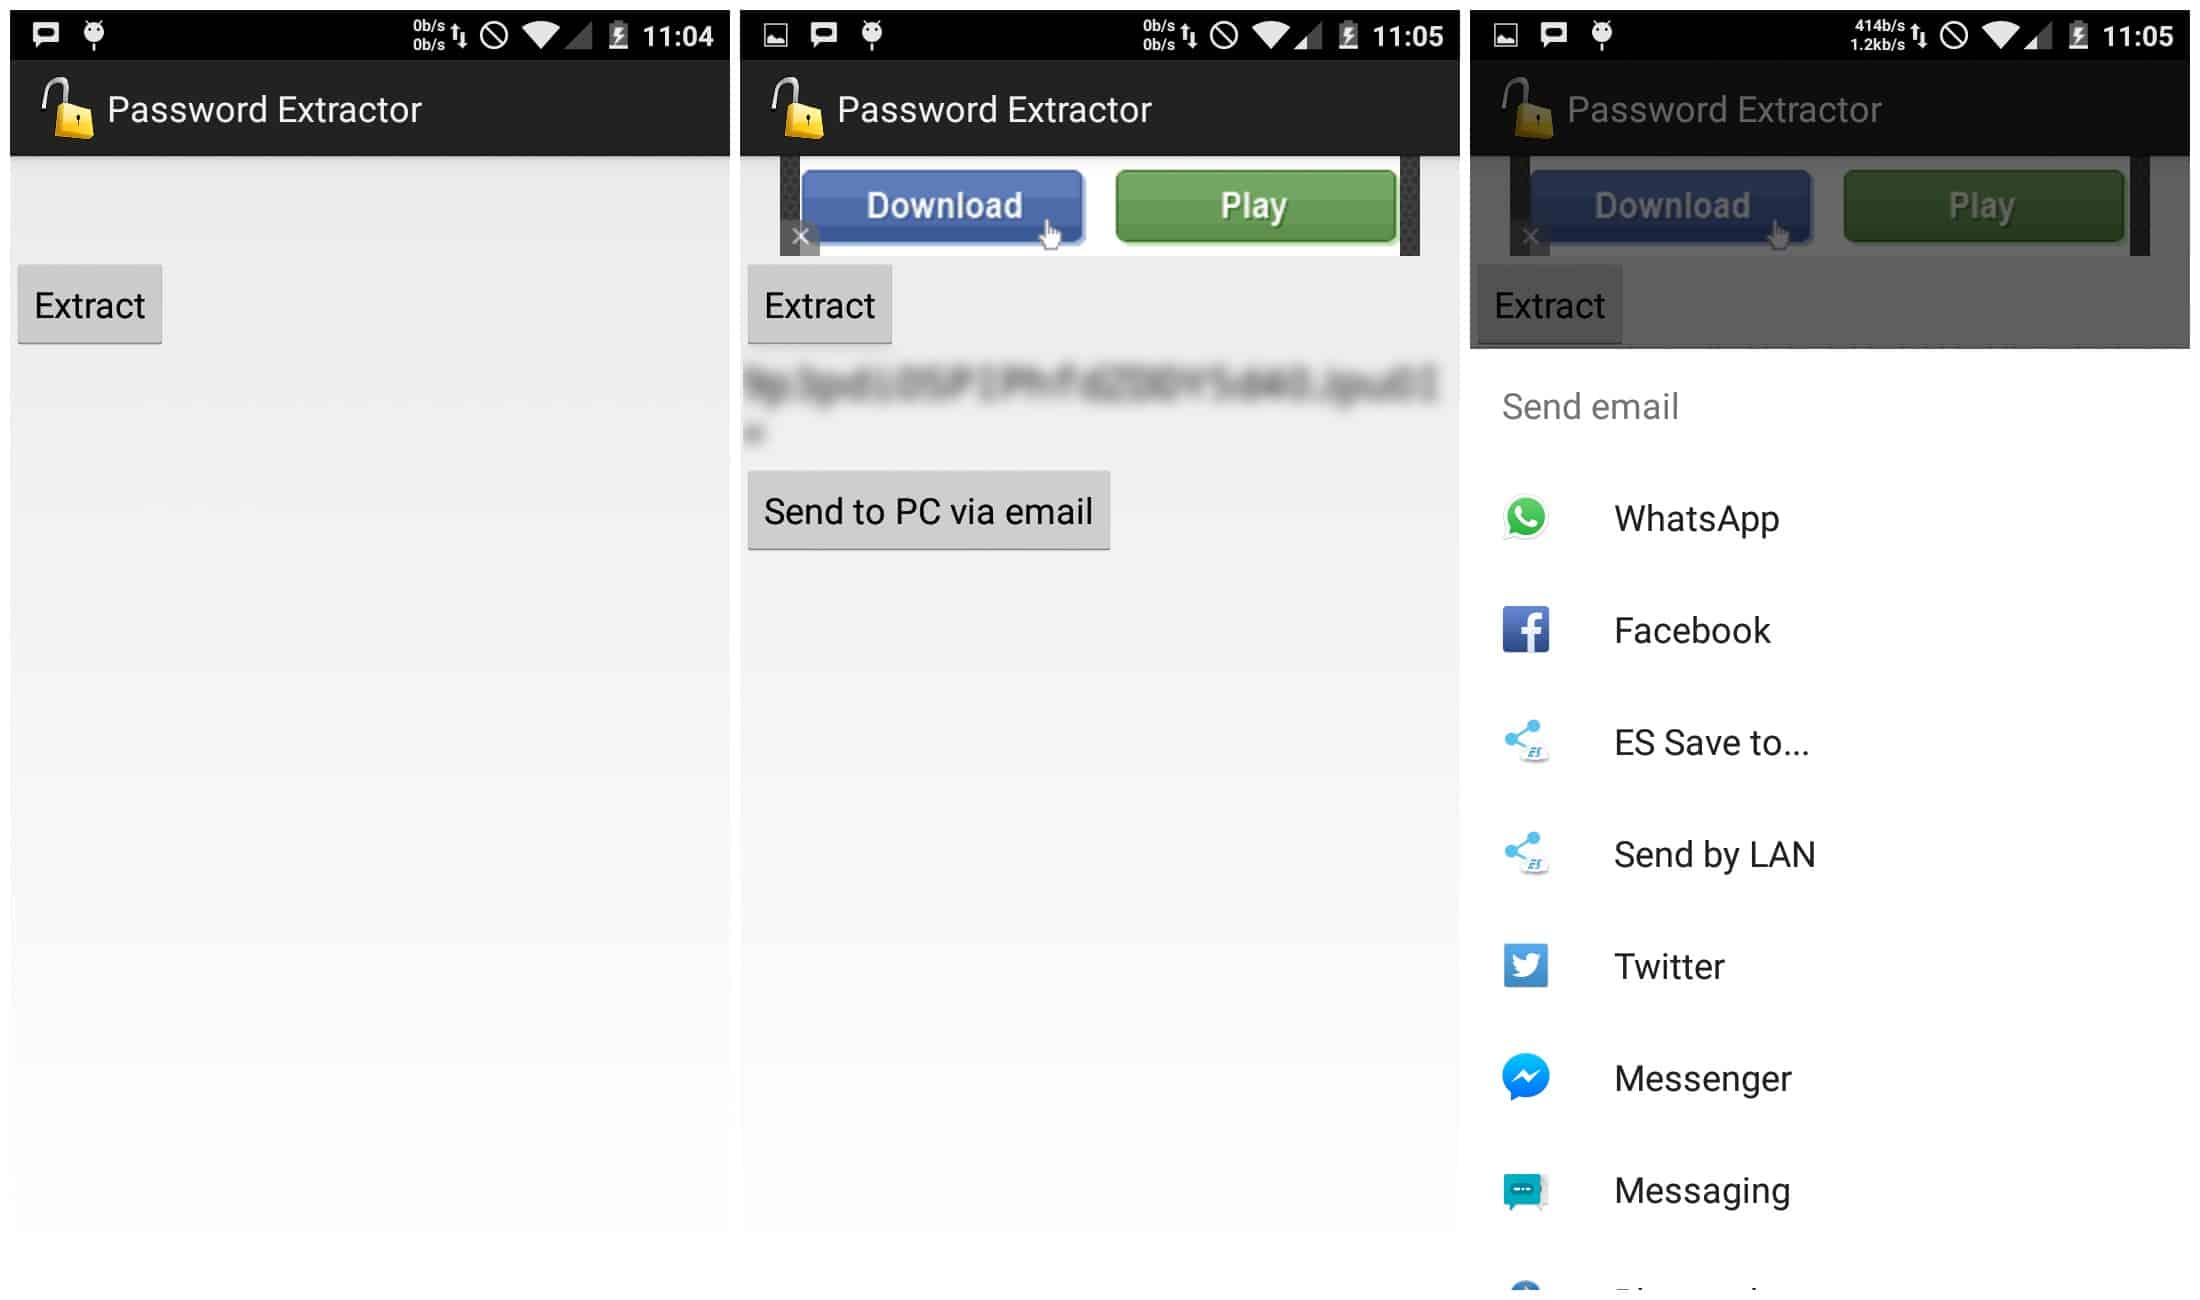 How to get WhatsApp Password Using an Android App